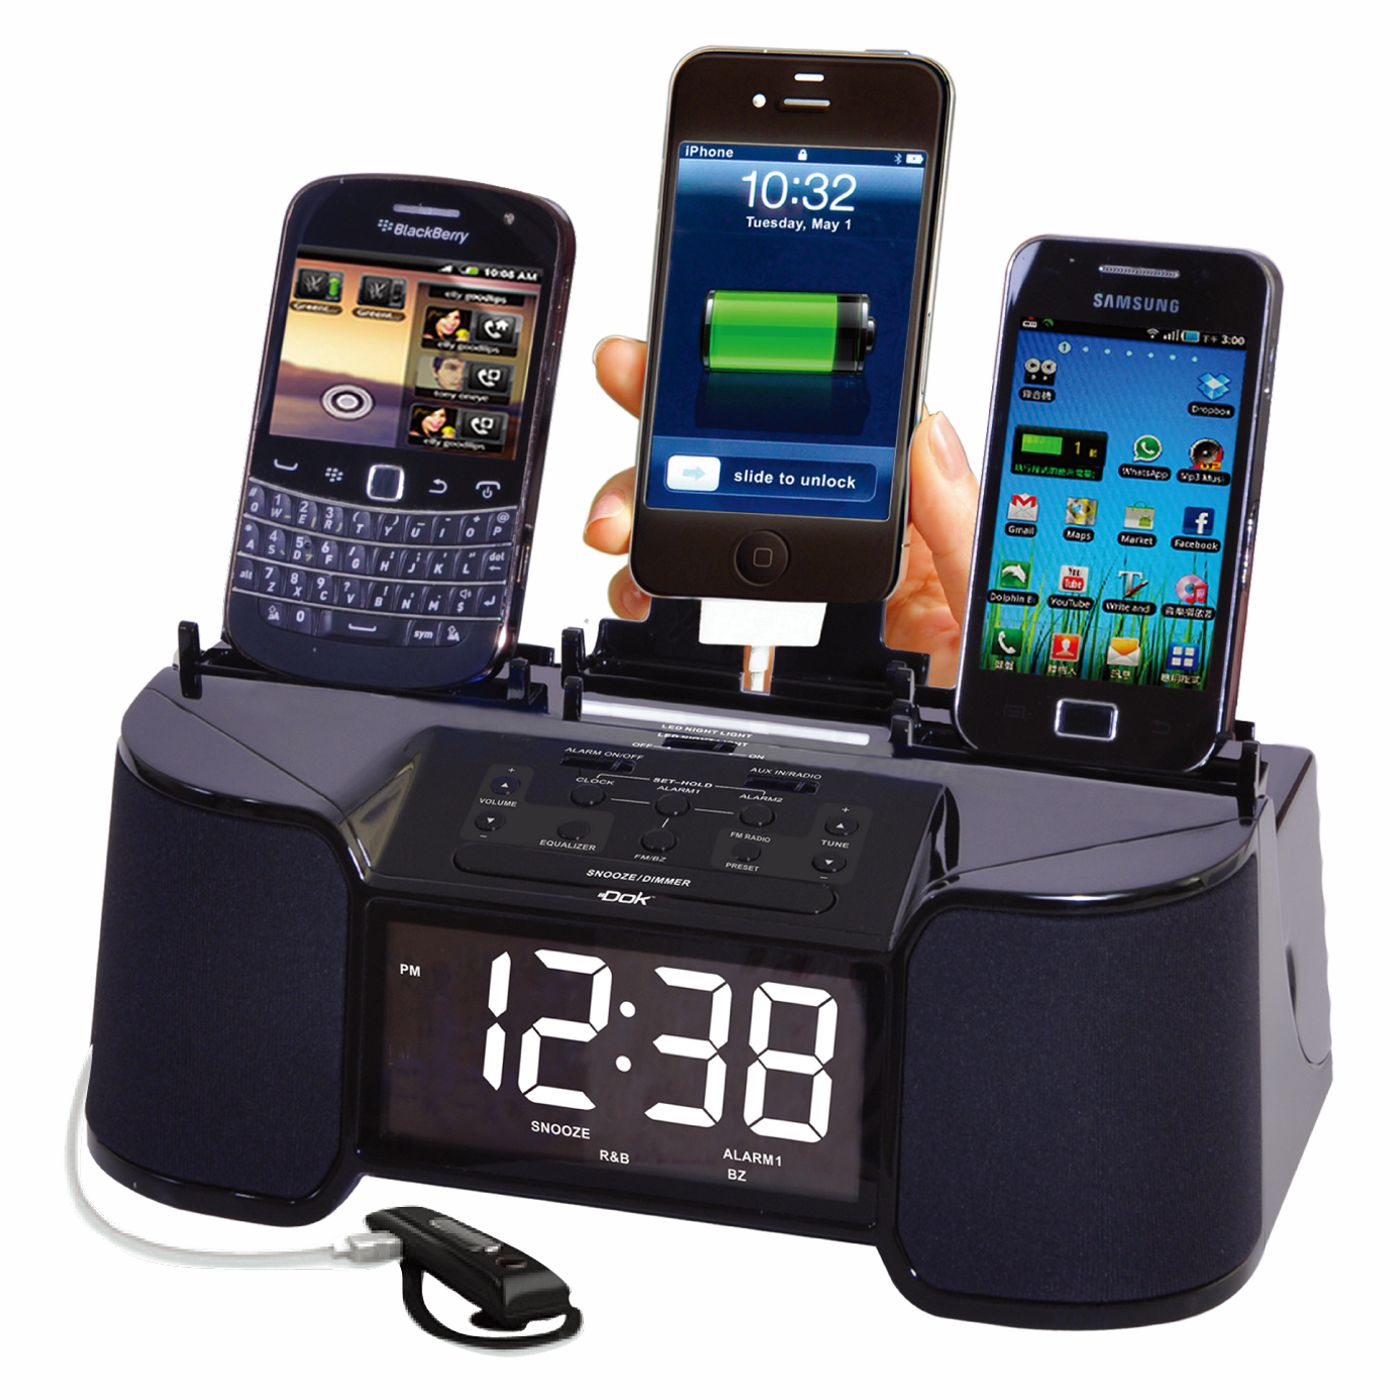 CR32 - 4 Port Smart Phone Charger with Speaker, Alarm, Clock & FM Radio